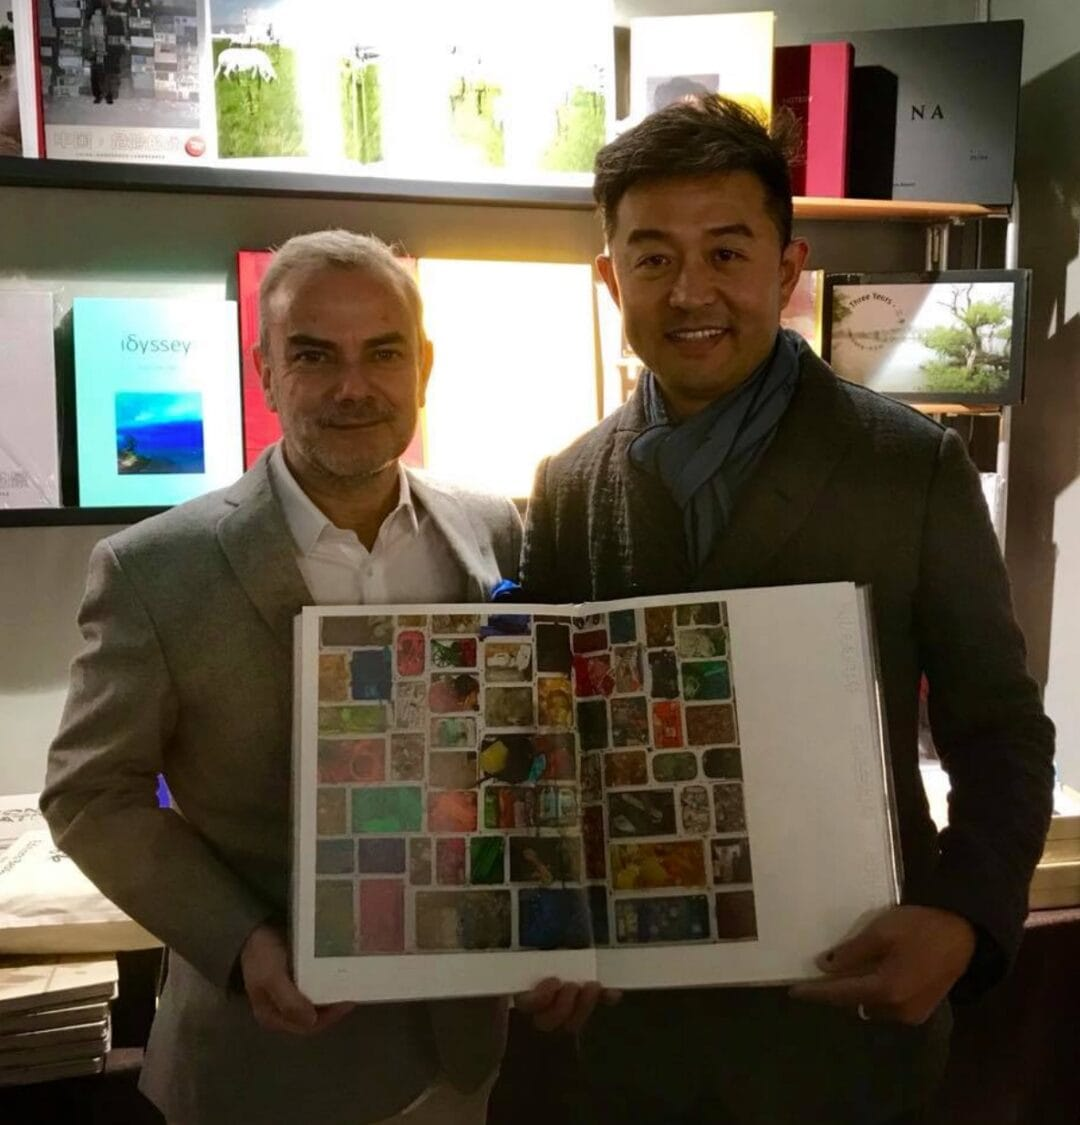 "It was at paris Photo, #LiuBolin visited me for signature of our las photobook ""China Dangerous Landscapes"" a #LimitedEdition of 800 copies with a #signed c print by the artist, only 75€ #ArtOfPerfection, #China #EditionsBessard"